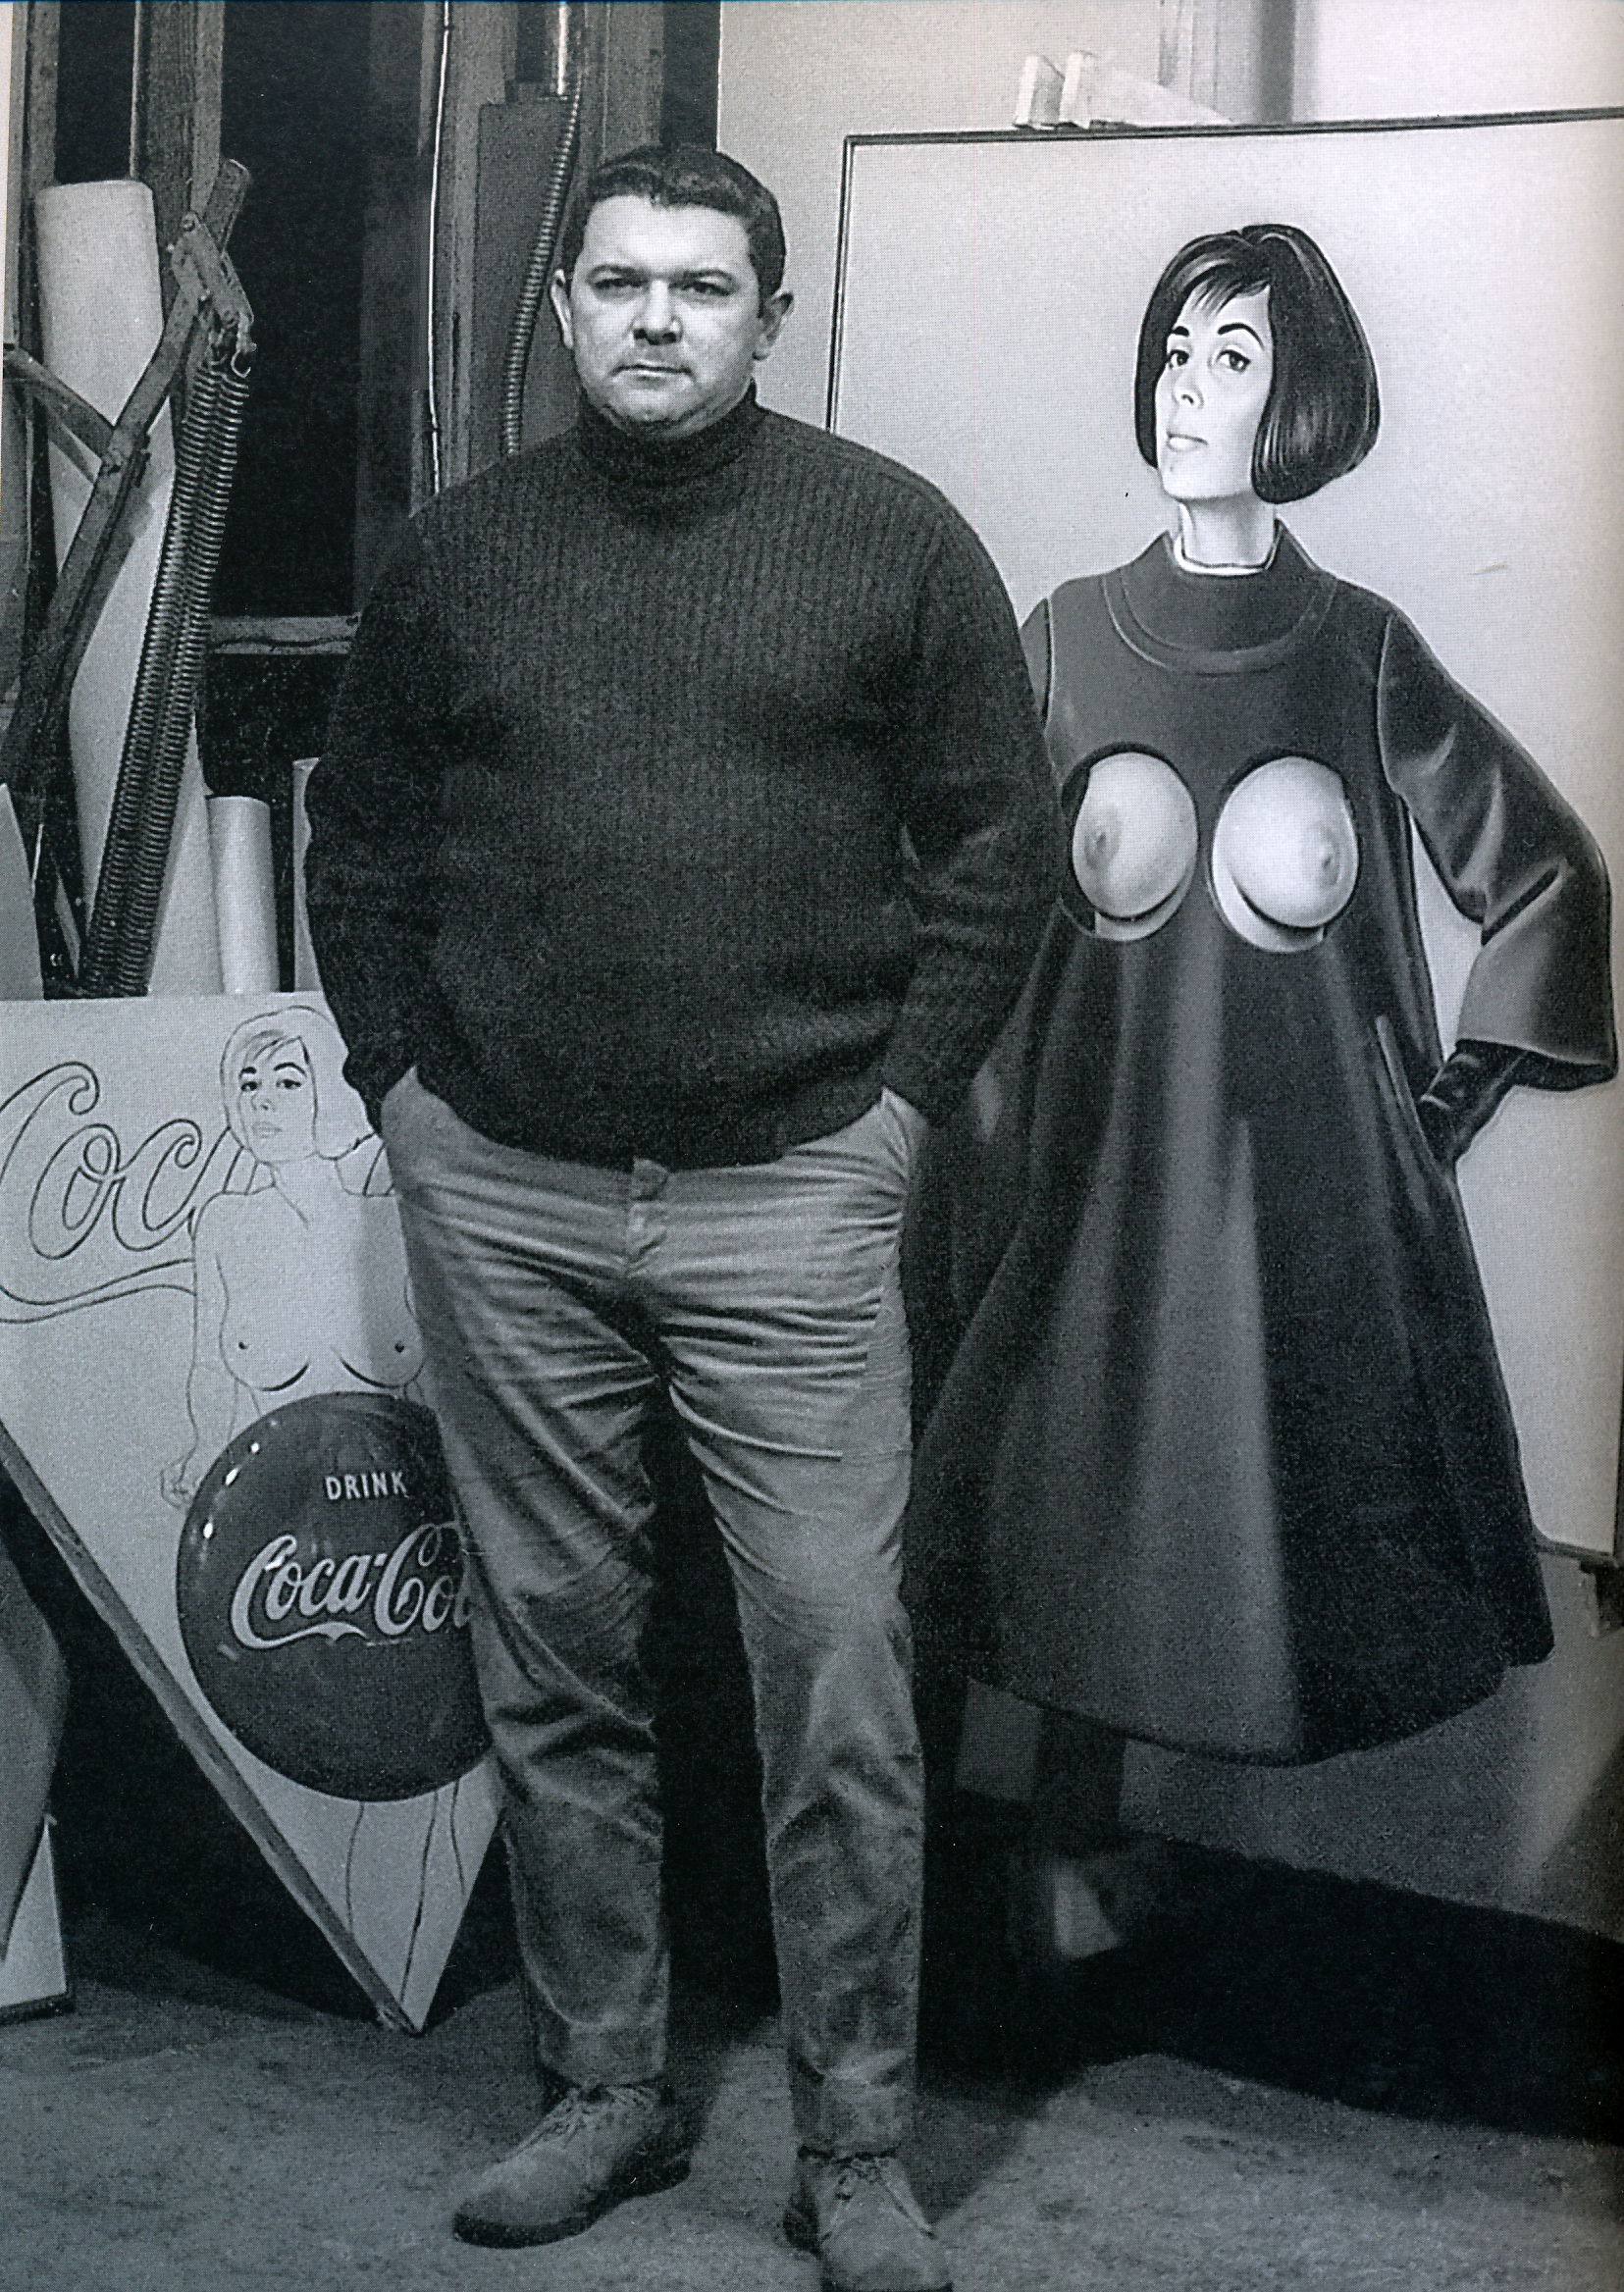 """Mel in front of """"Blue Coat"""" and """"Things go better with"""" in his Union City studio, 1967."""